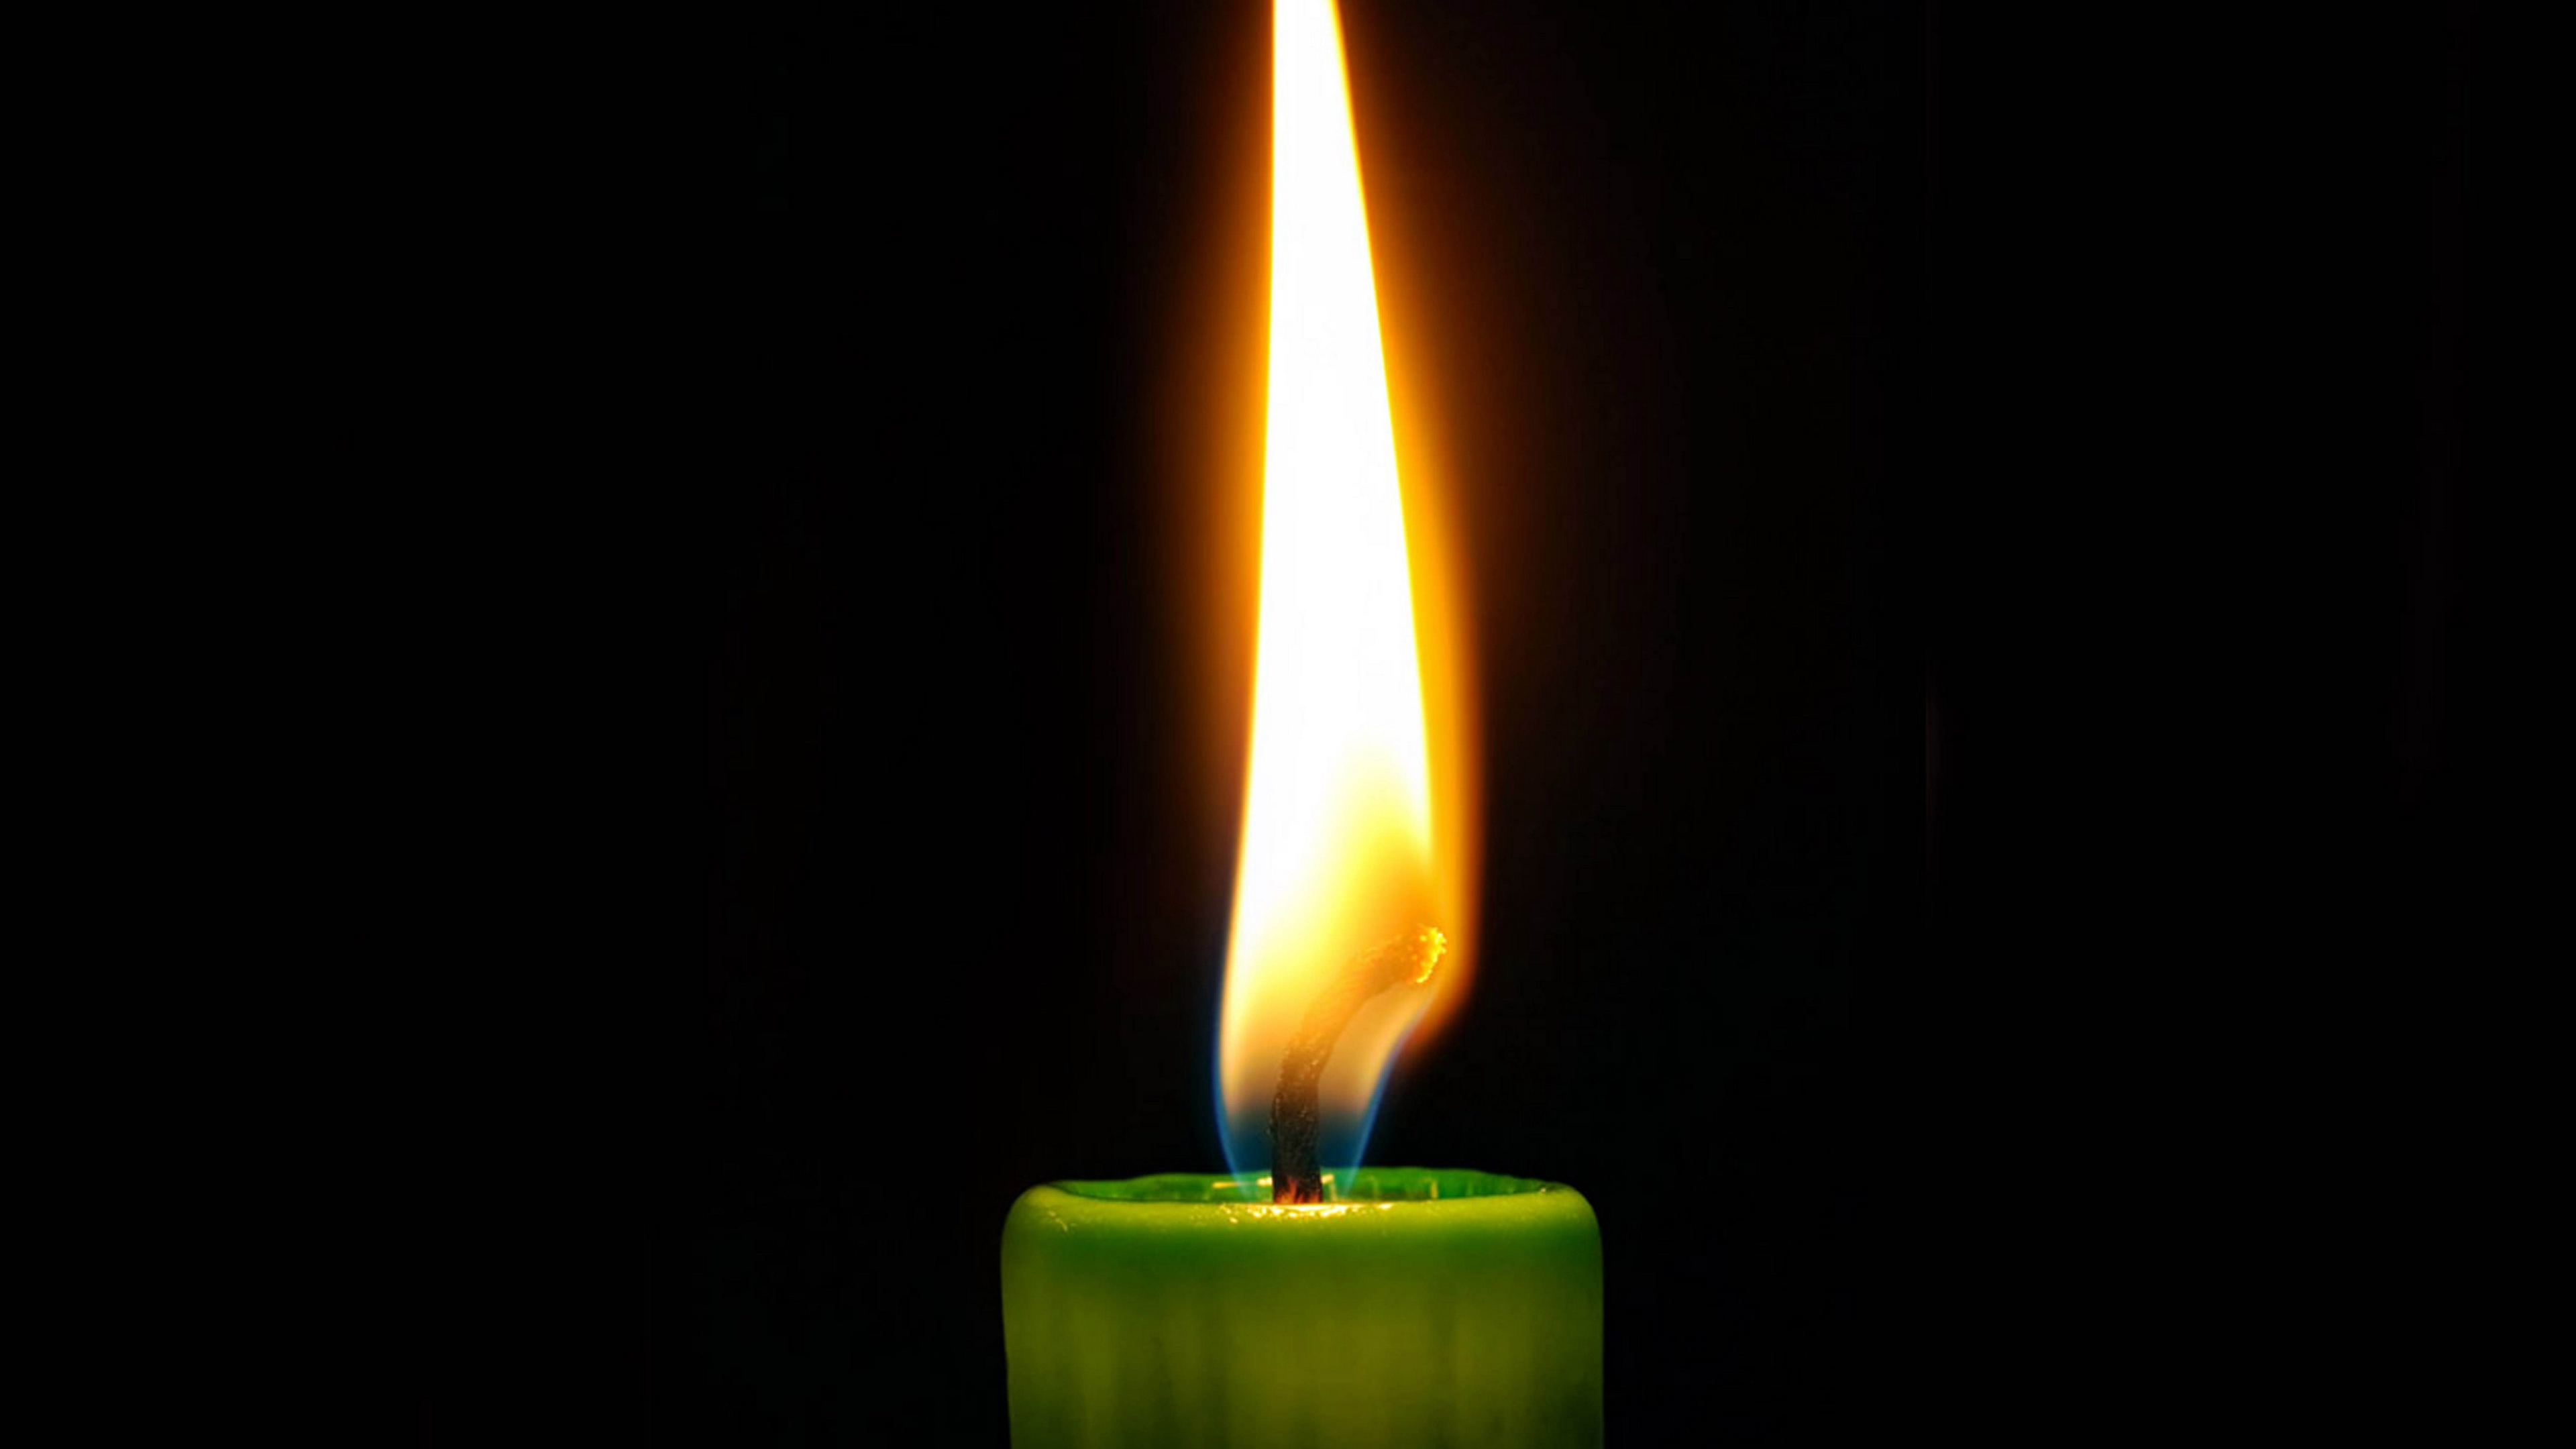 candle fire black background wax wick 4k 1540574344 - candle, fire, black background, wax, wick 4k - Fire, candle, black background